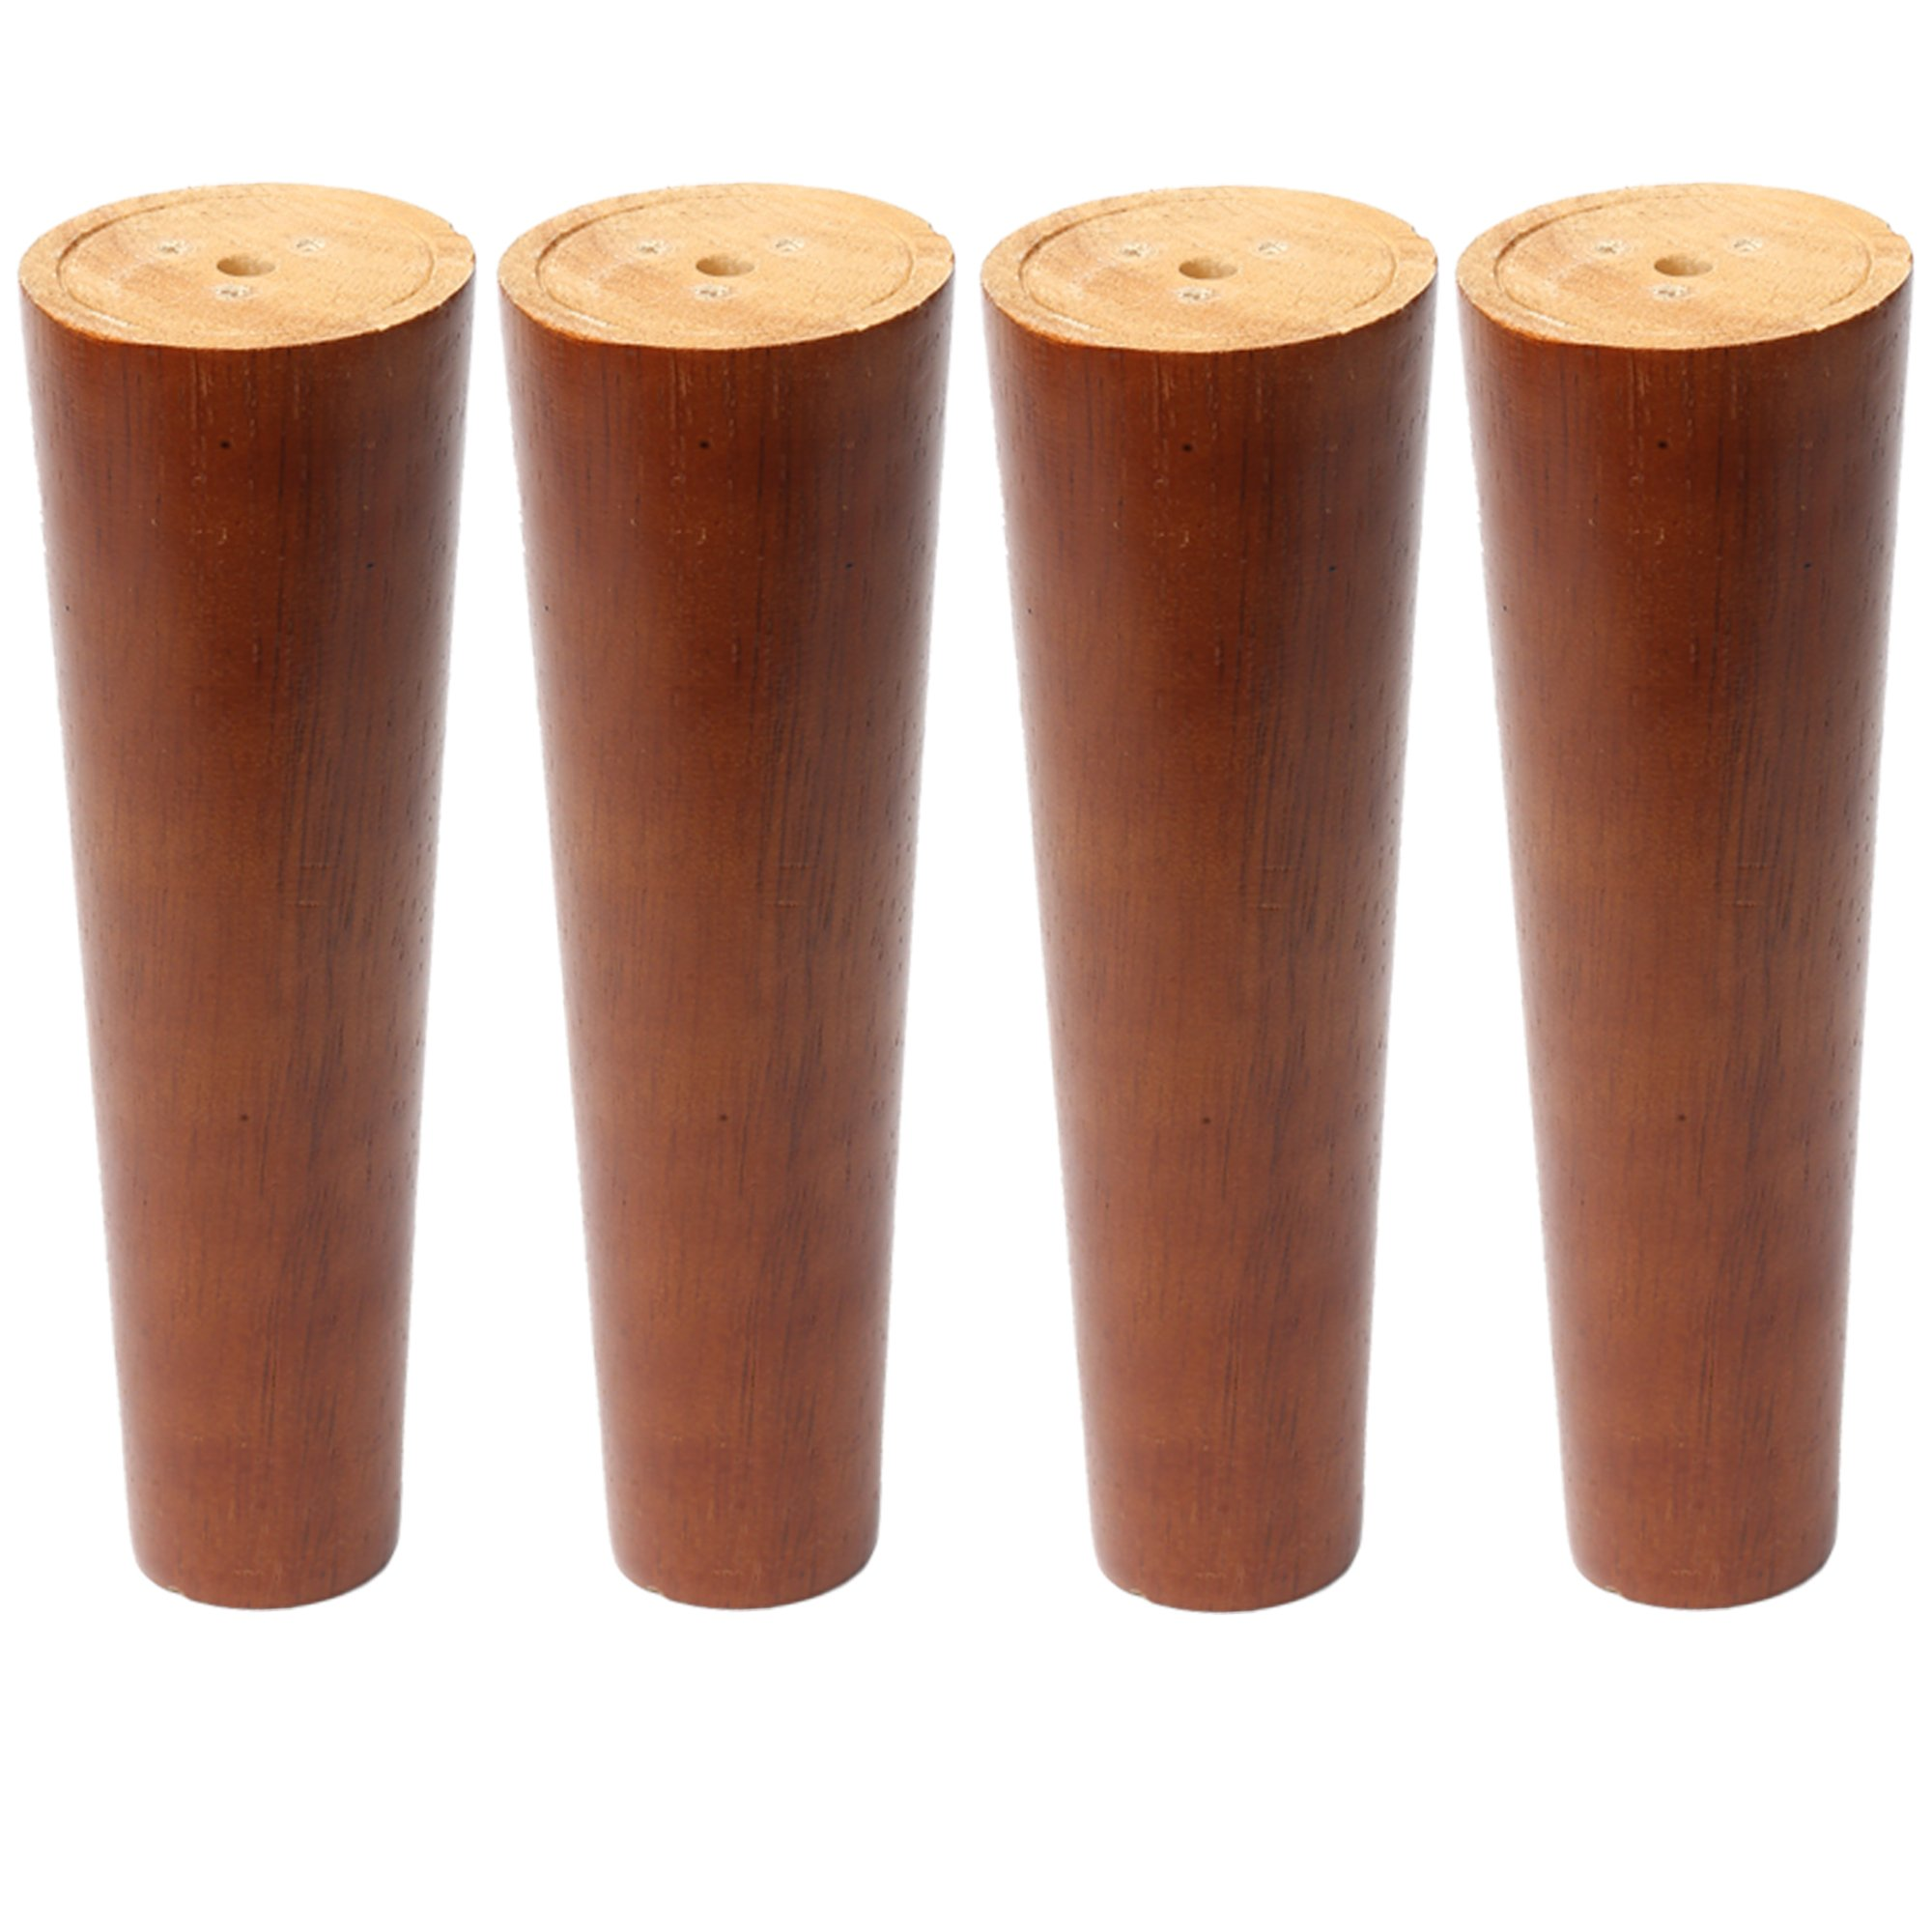 Sweet melodi Round Solid Wood Furniture Sofa/Chair/Couch/Loveseat/Cabinet Replacement Legs With special installation parts,Perfect for IKEA or US made furniture (Walnut color, 8 Inches,4 pcs)